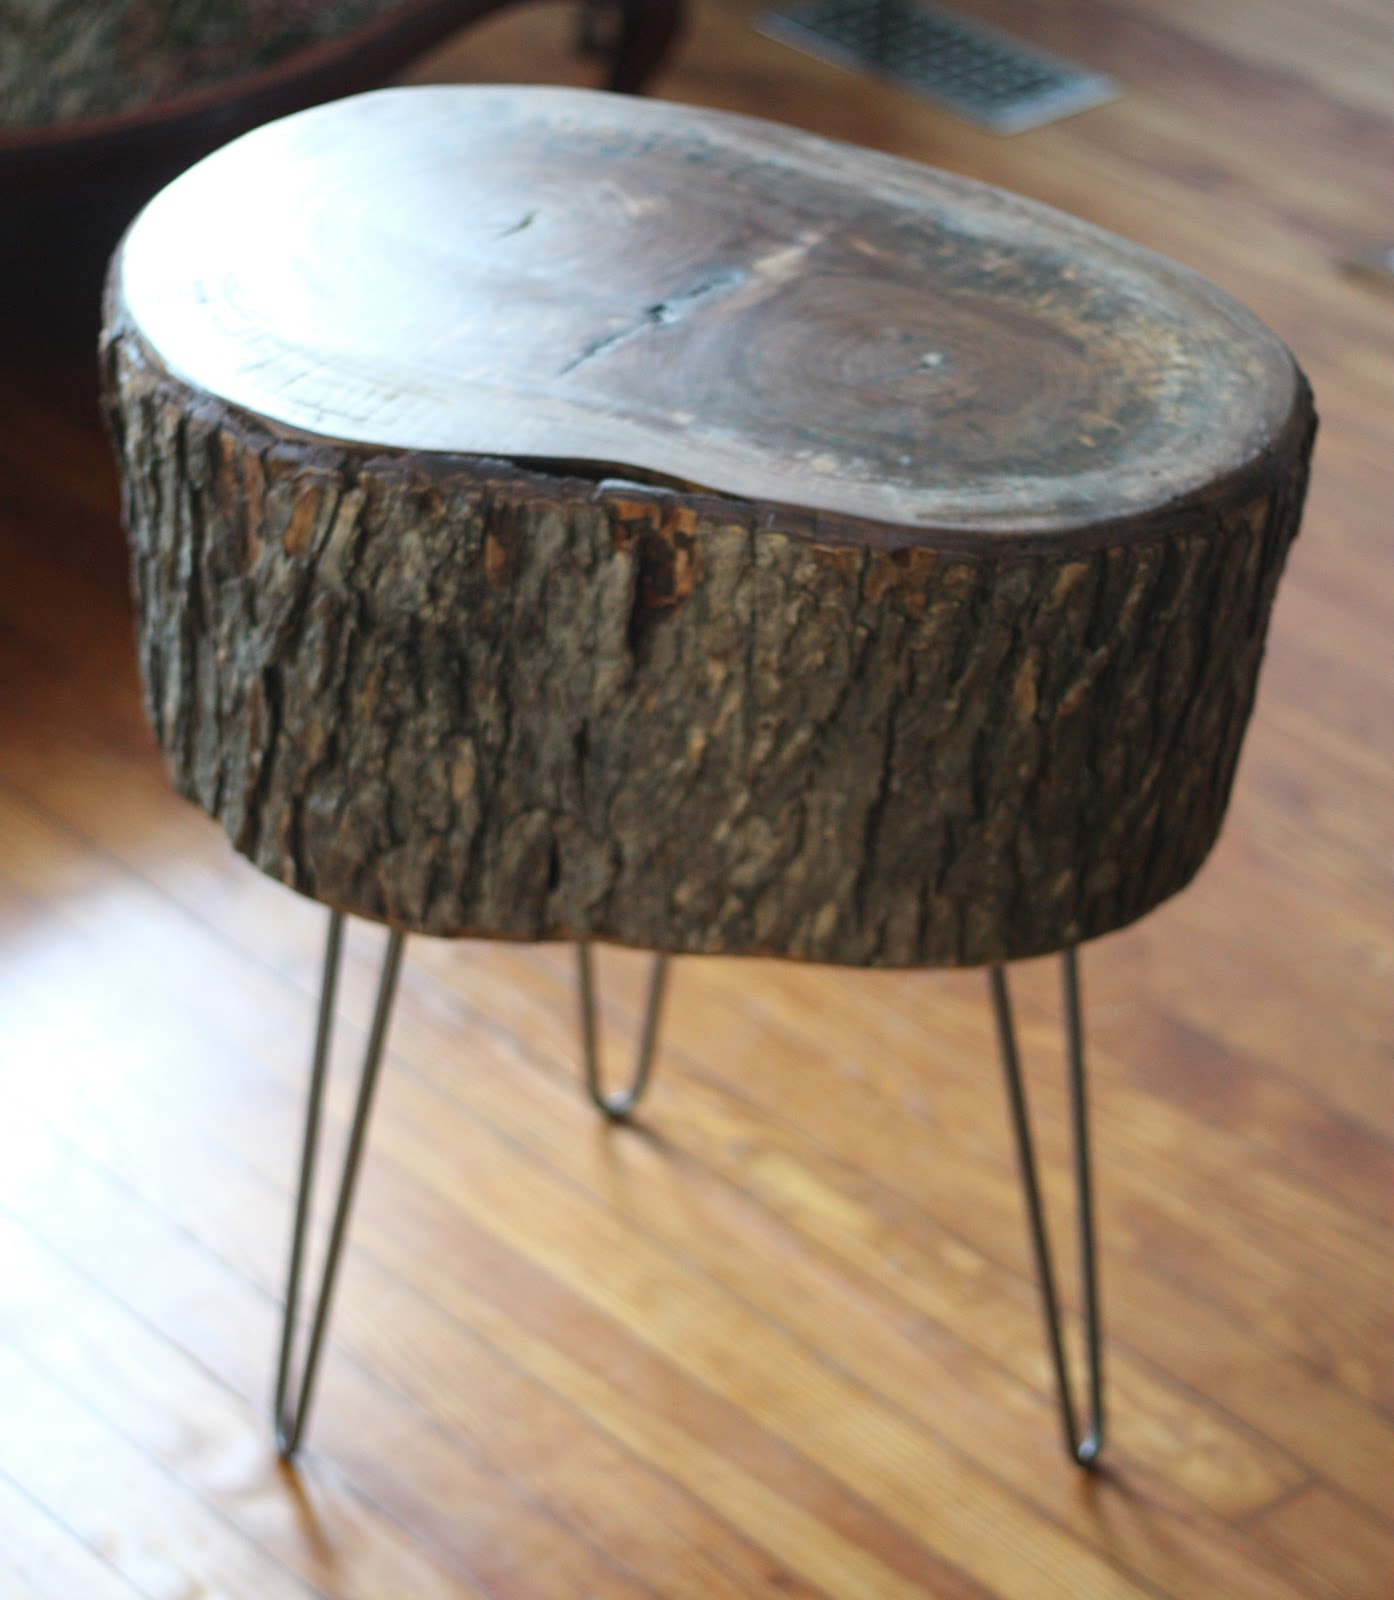 wood stump end table petrified tree side designs guide patterns accent yellow patio umbrella cherry set quilted placemats little outdoor ese style lamps touch modern decor ideas